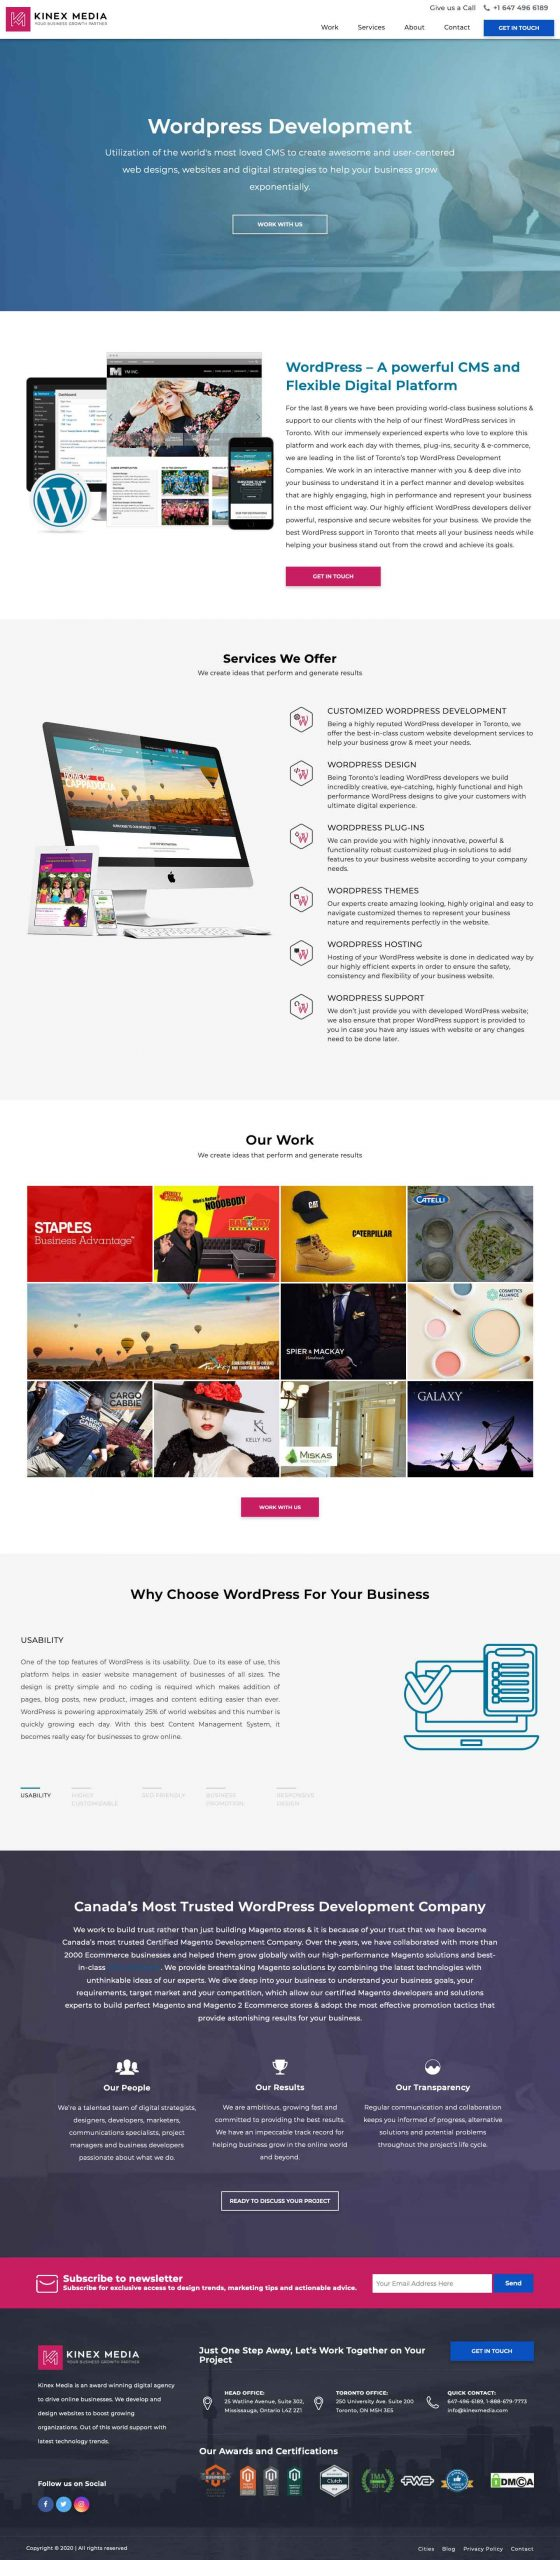 good example up to date web design scaled